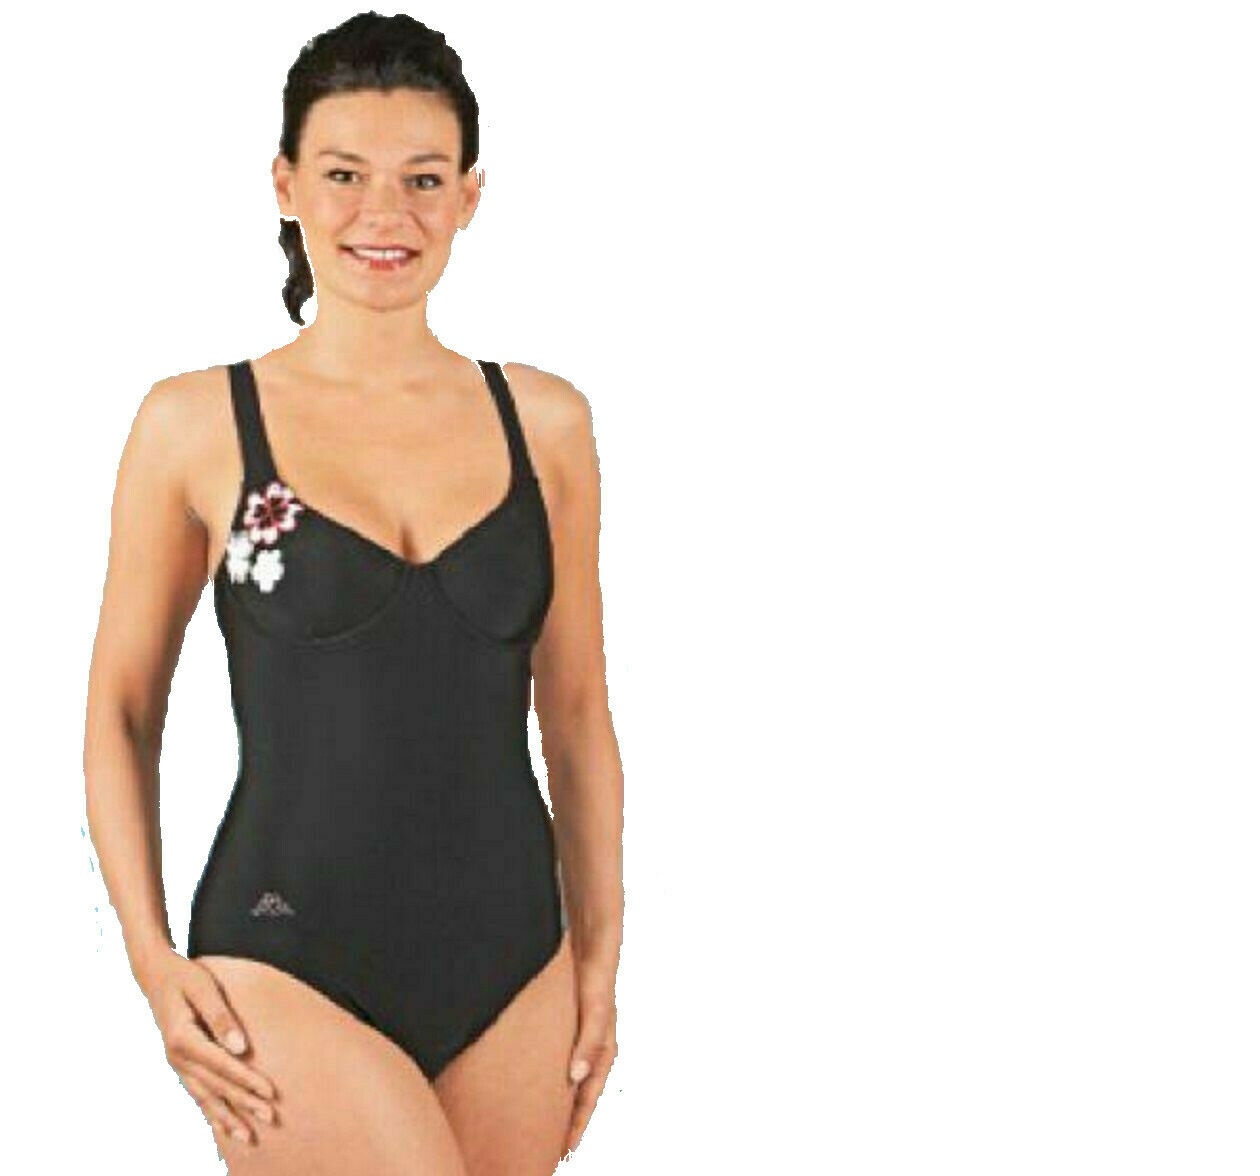 Kappa Womens Swimsuit Black Swimming Suit Underwired Onesie Size XXL/XL or L